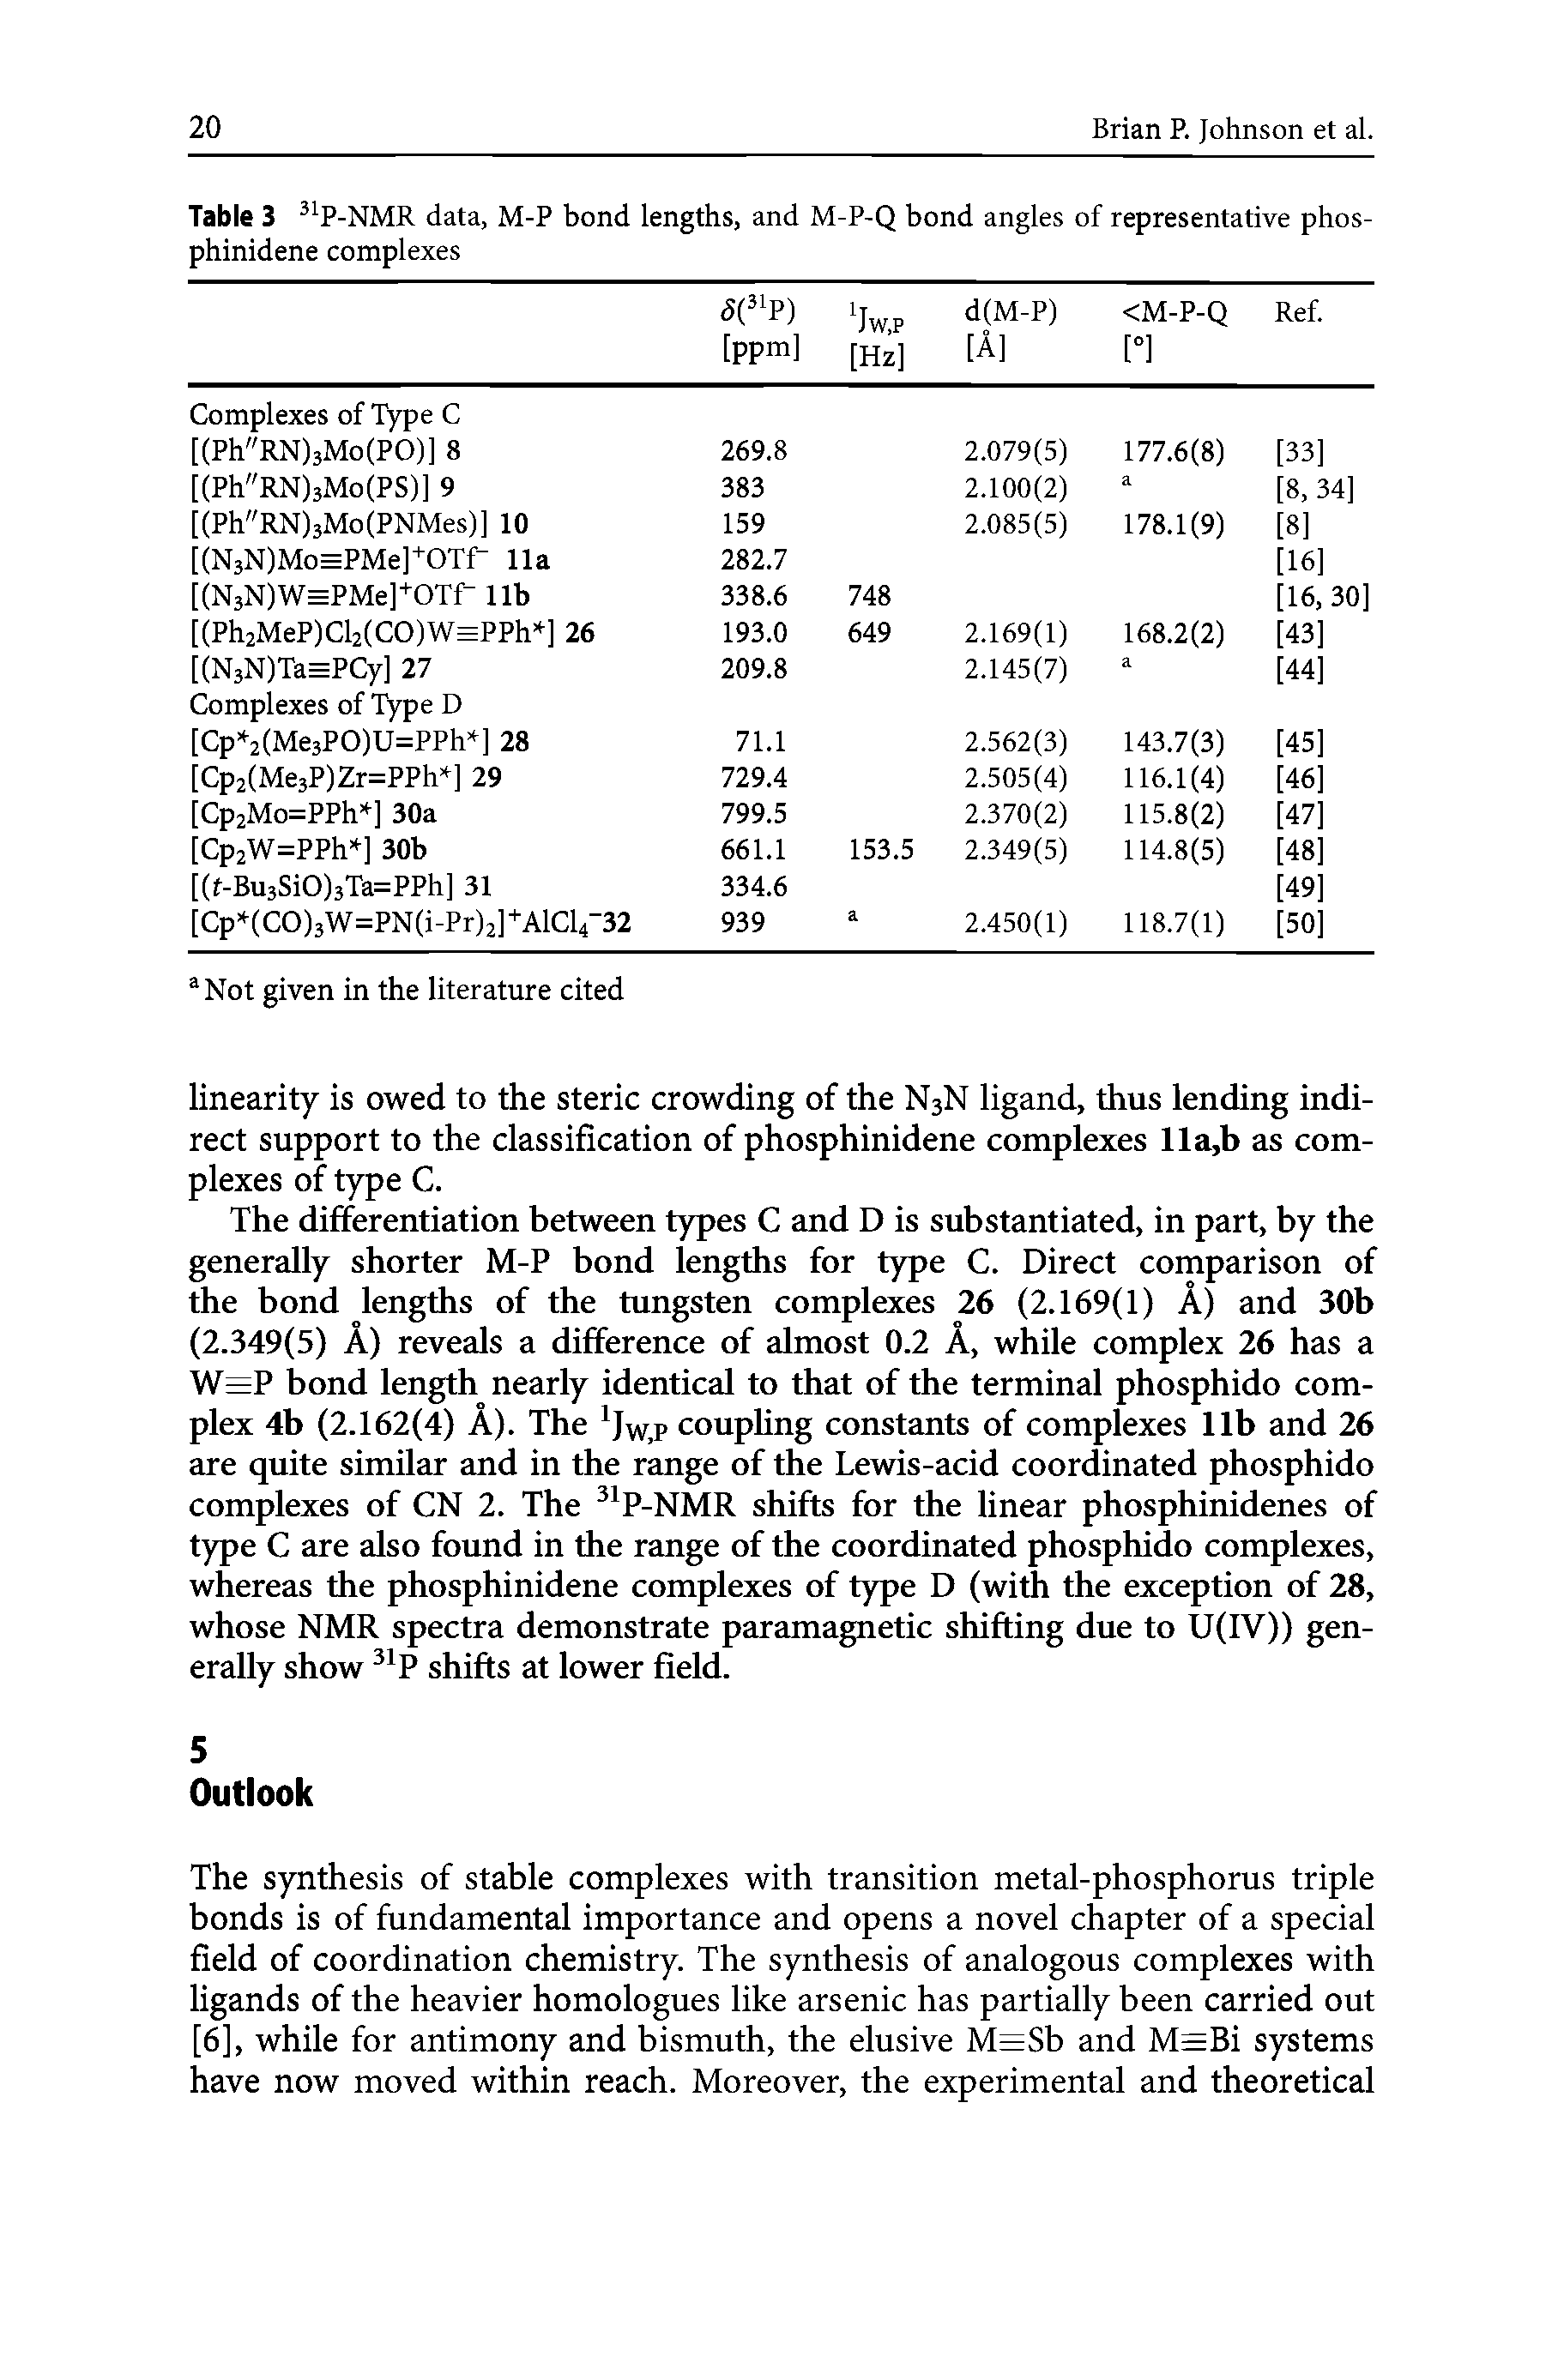 Table 3 P-NMR data, M-P bond lengths, and M-P-Q bond angles of representative phosphinidene complexes ...